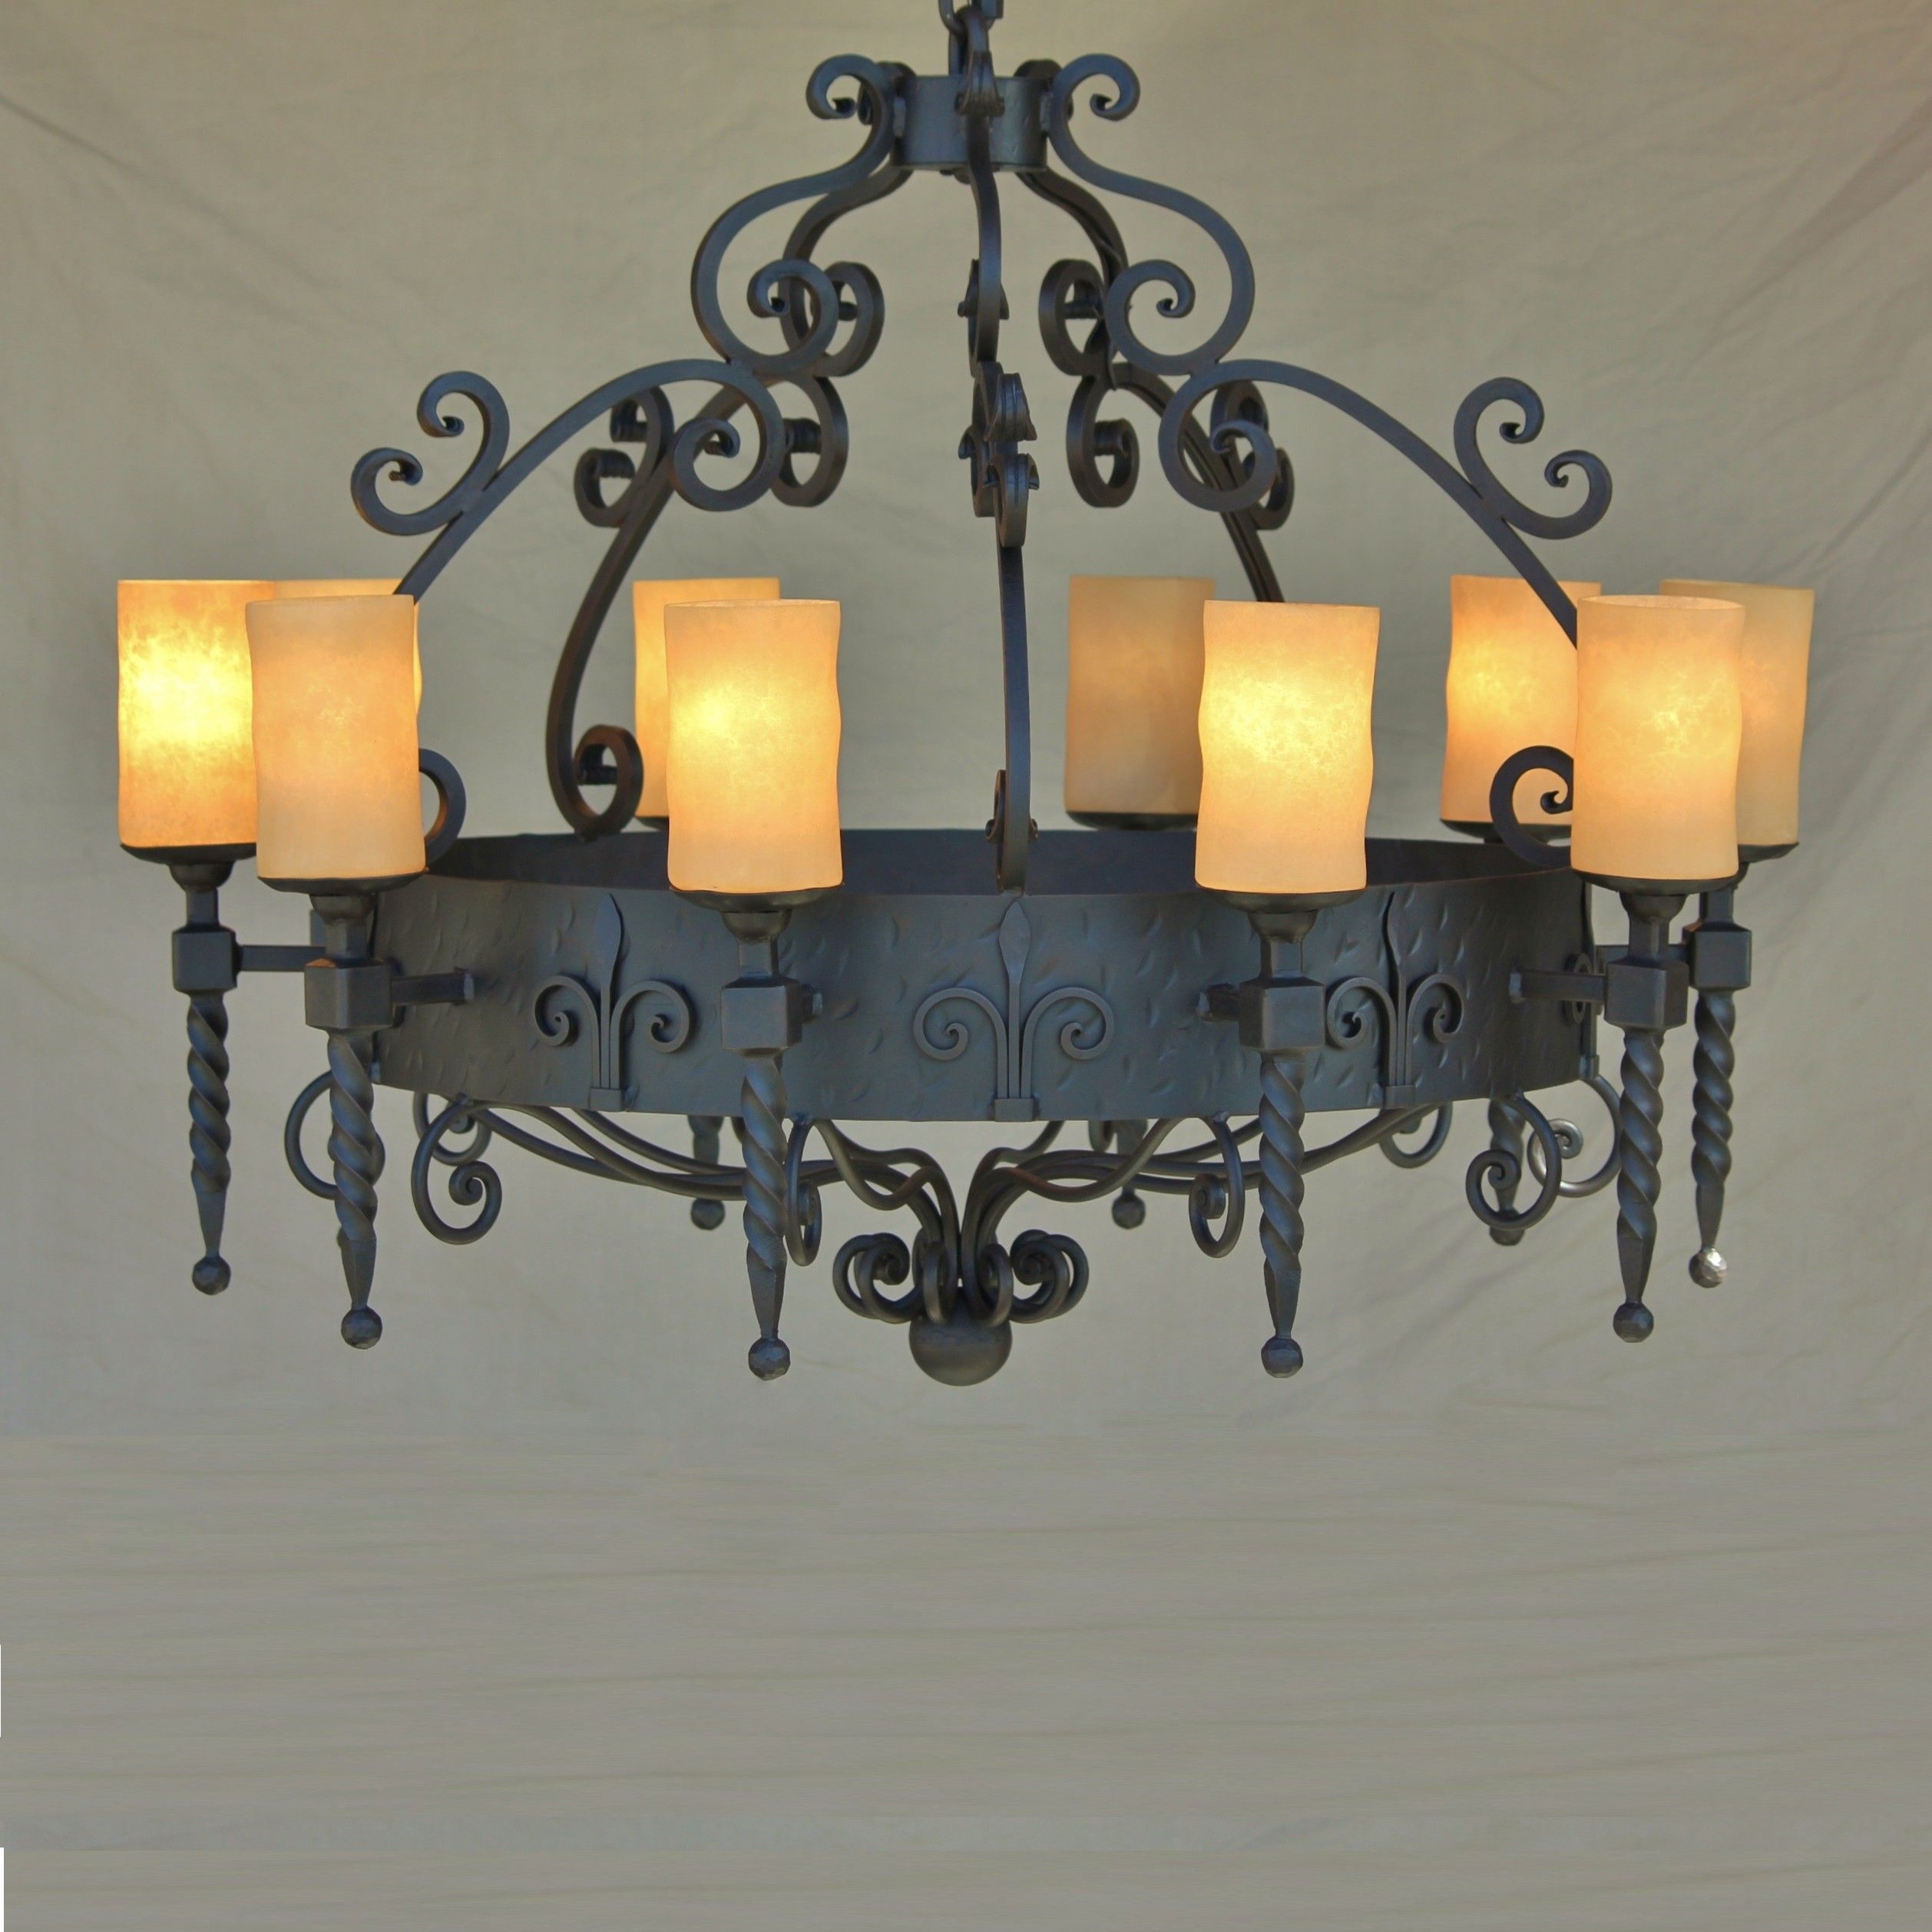 Spanish revival chandelier design ideas pinterest spanish spanish revival chandelier arubaitofo Gallery